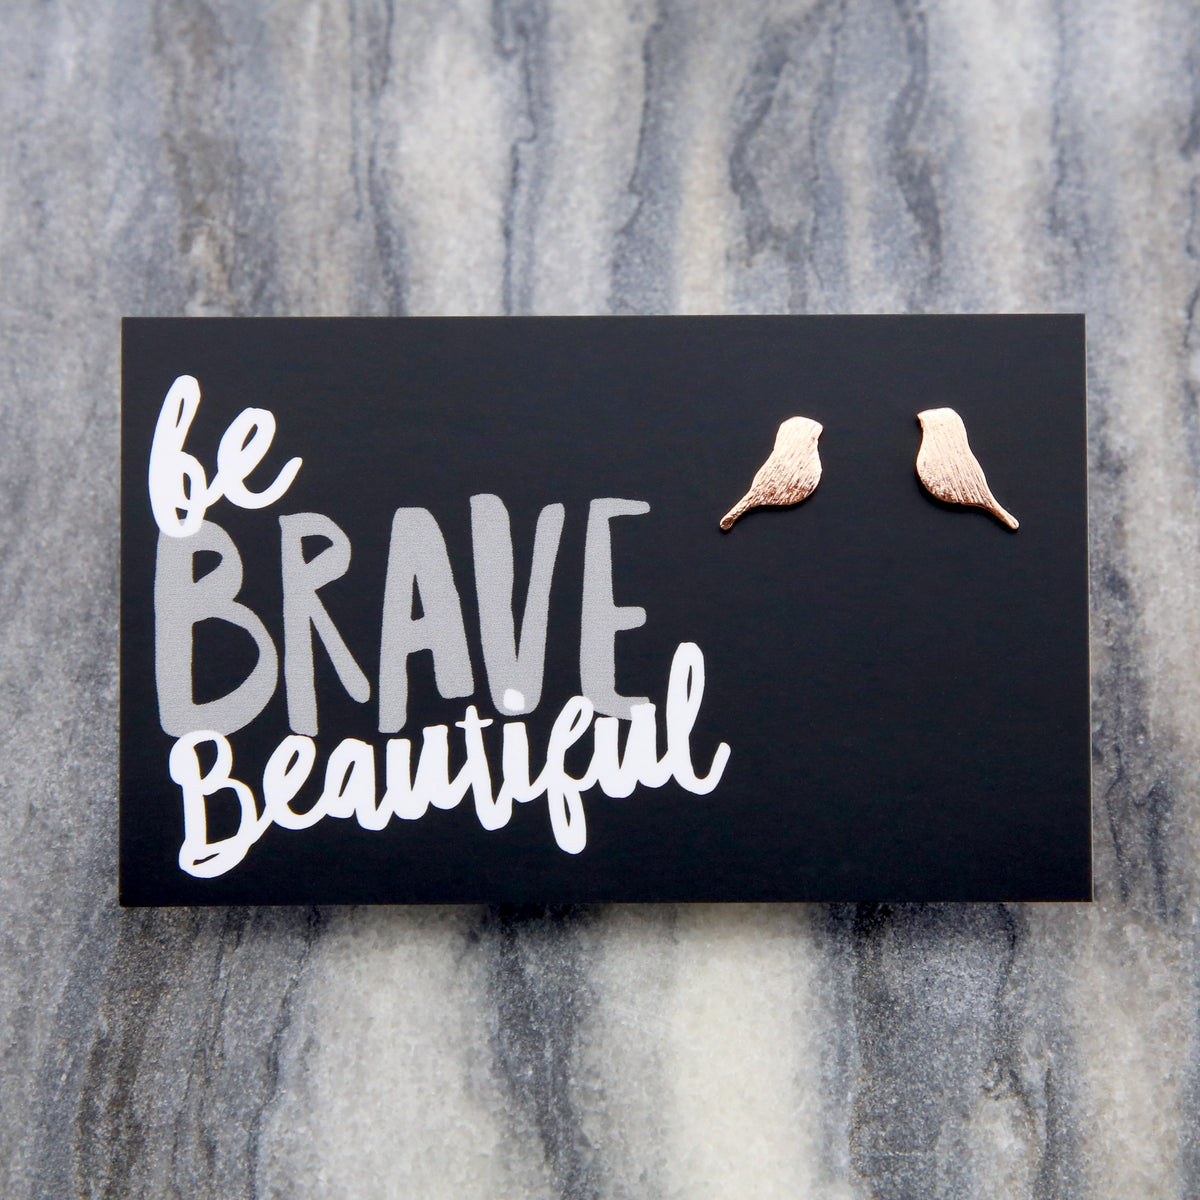 Be Brave Beautiful - BIRD earrings! Plated Studs - Rose Gold (9807)